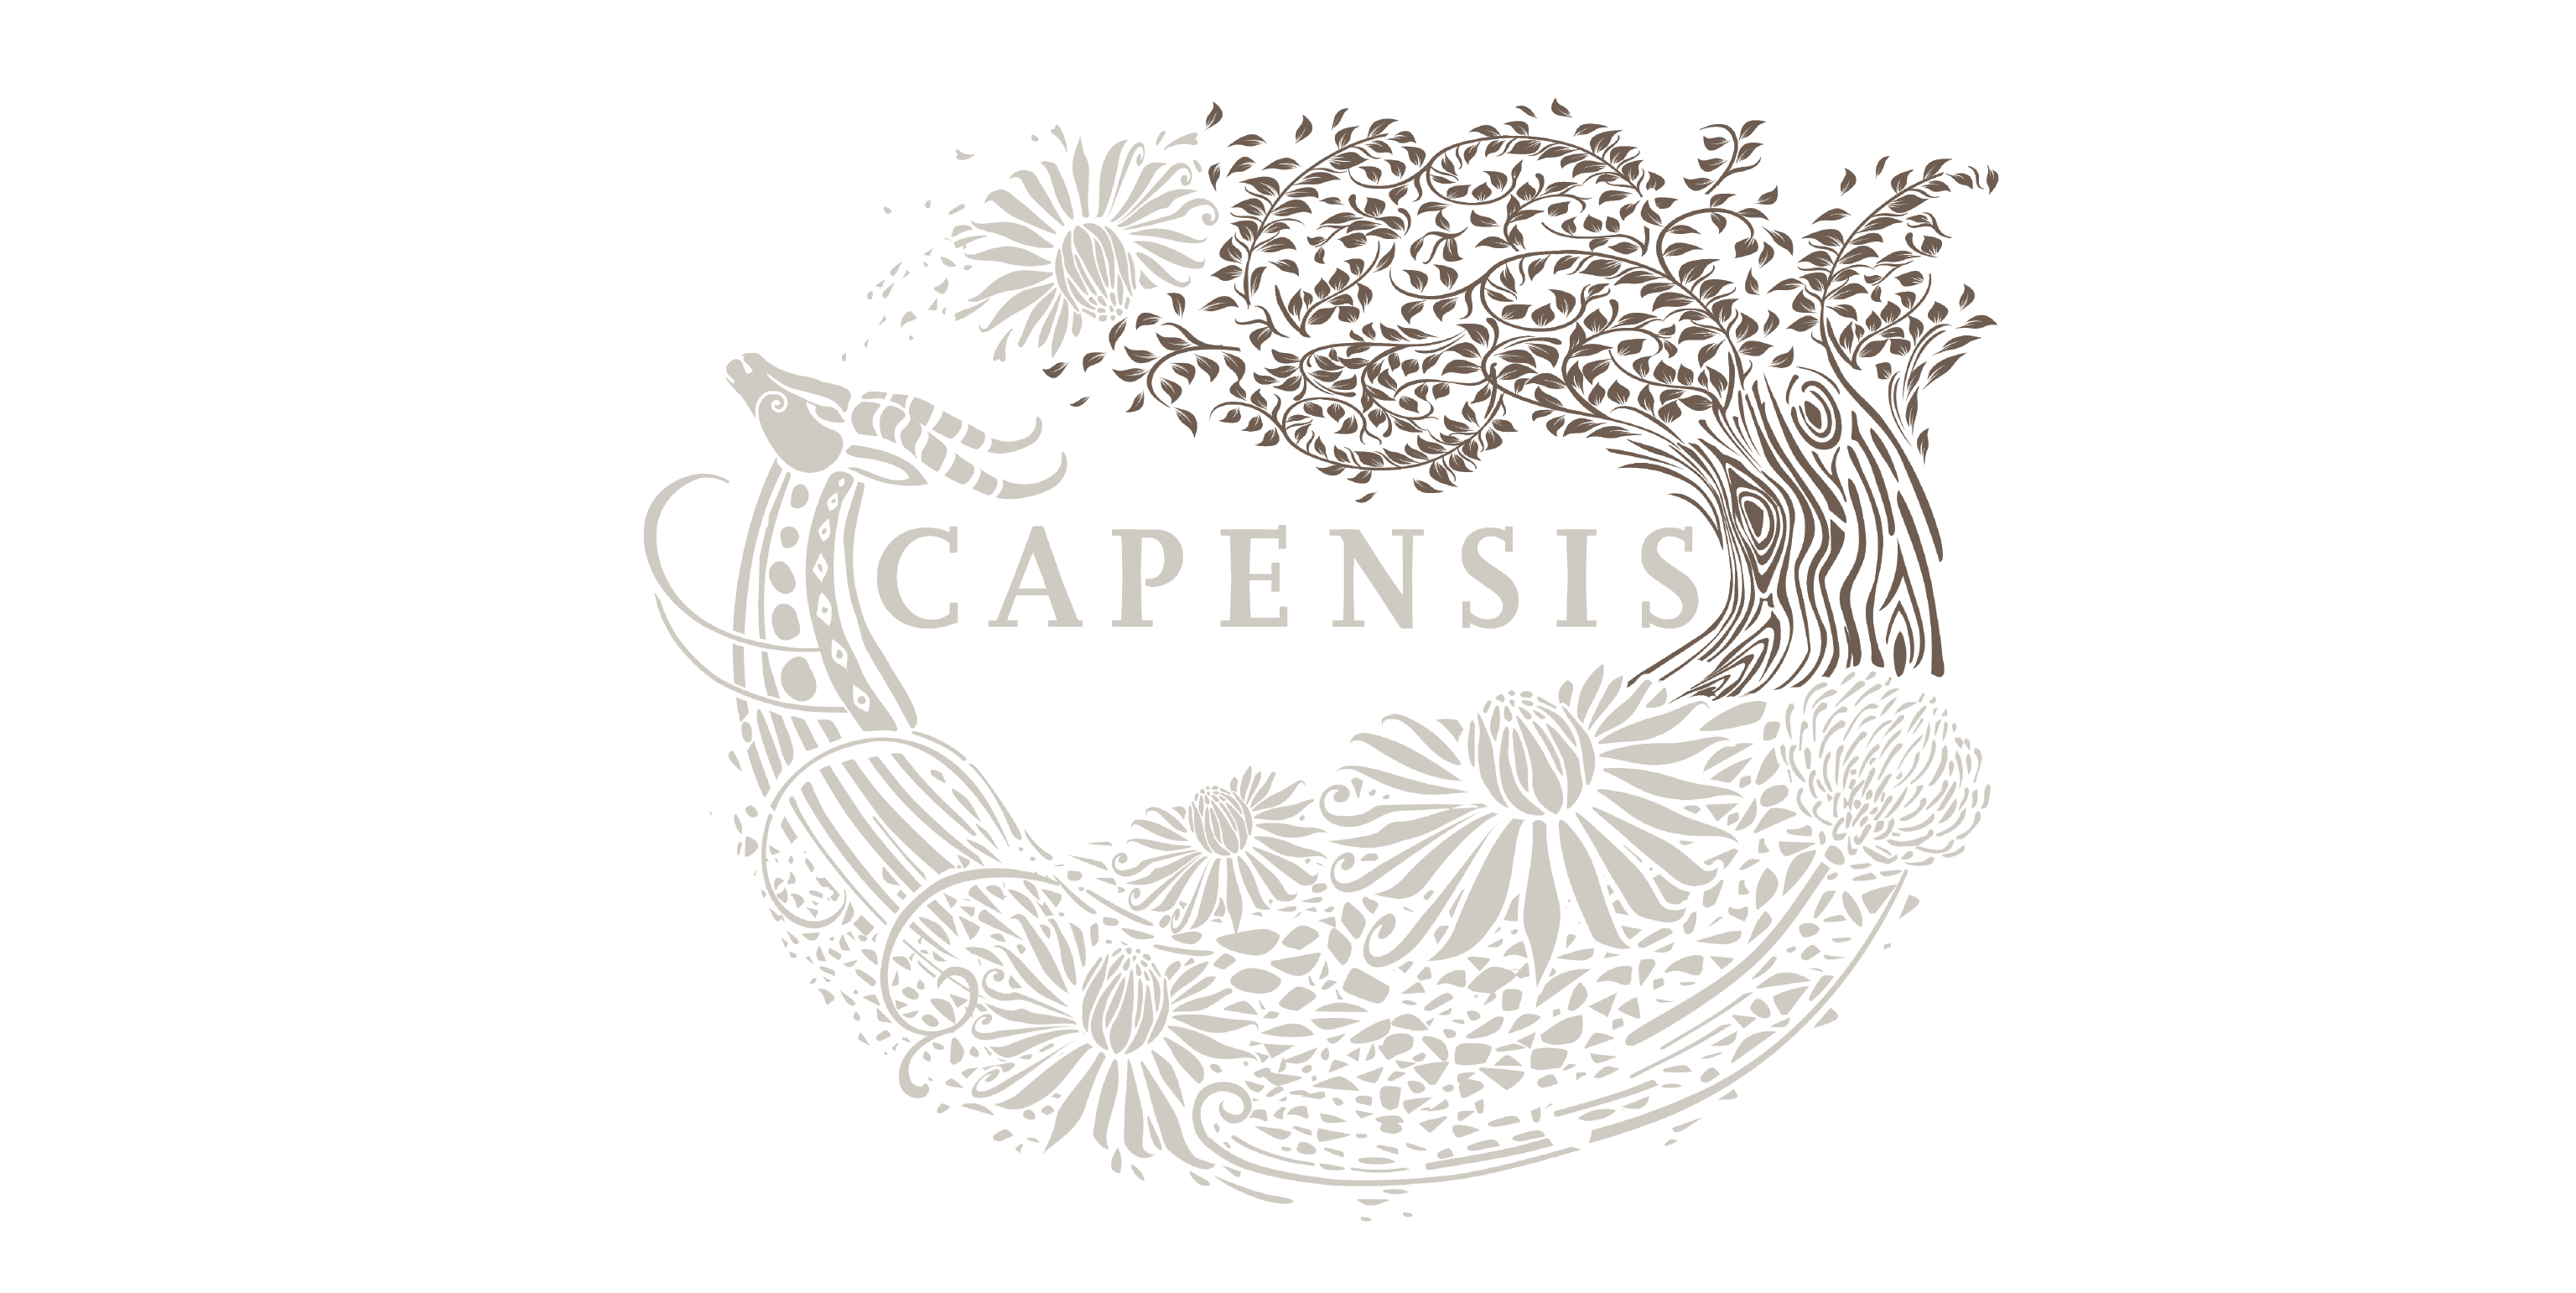 Capensis label with Marula Tree highlighted